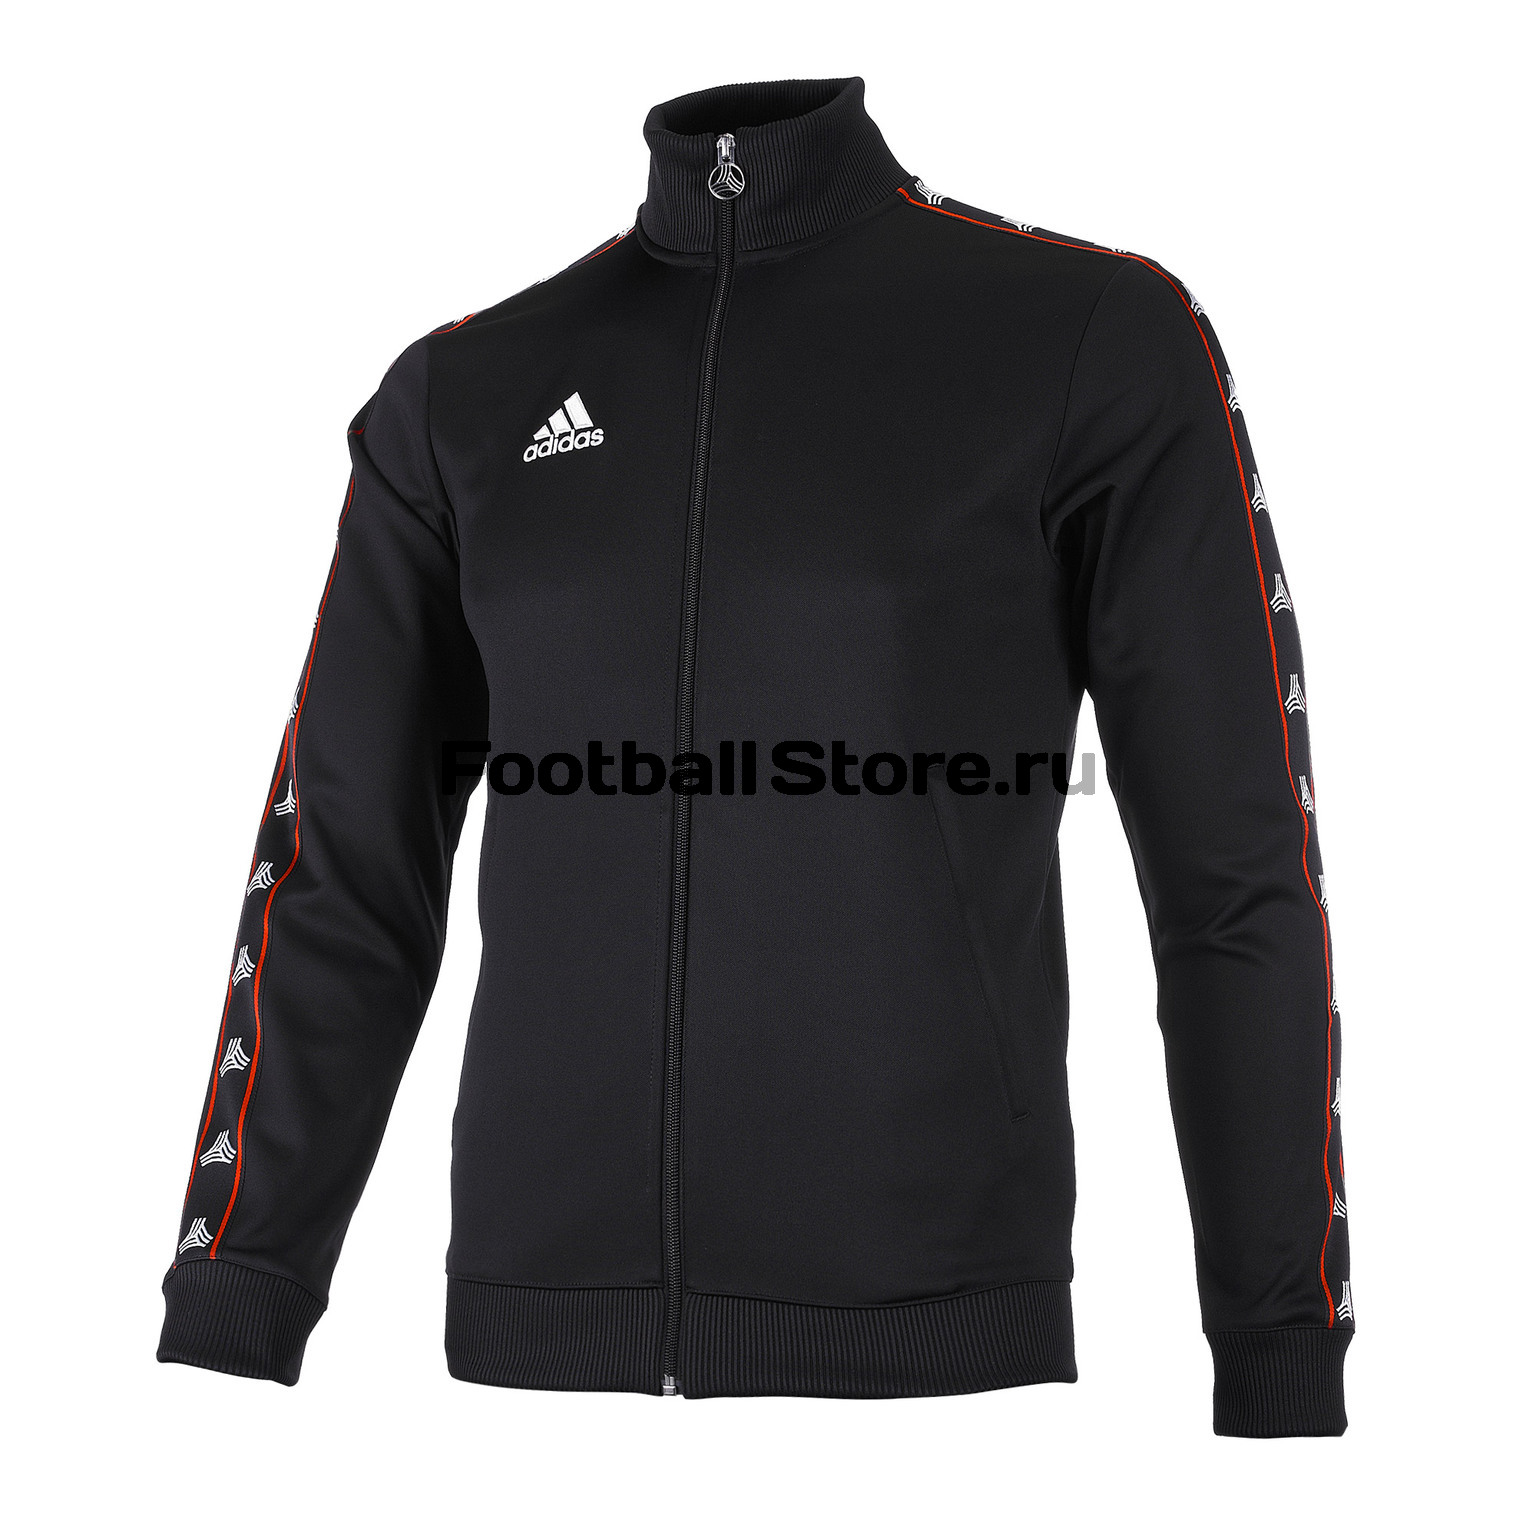 Олимпийка Adidas Tan Club Home DW9360 олимпийка мужская adidas tan club h jkt цвет черный dw9360 размер xs 40 42